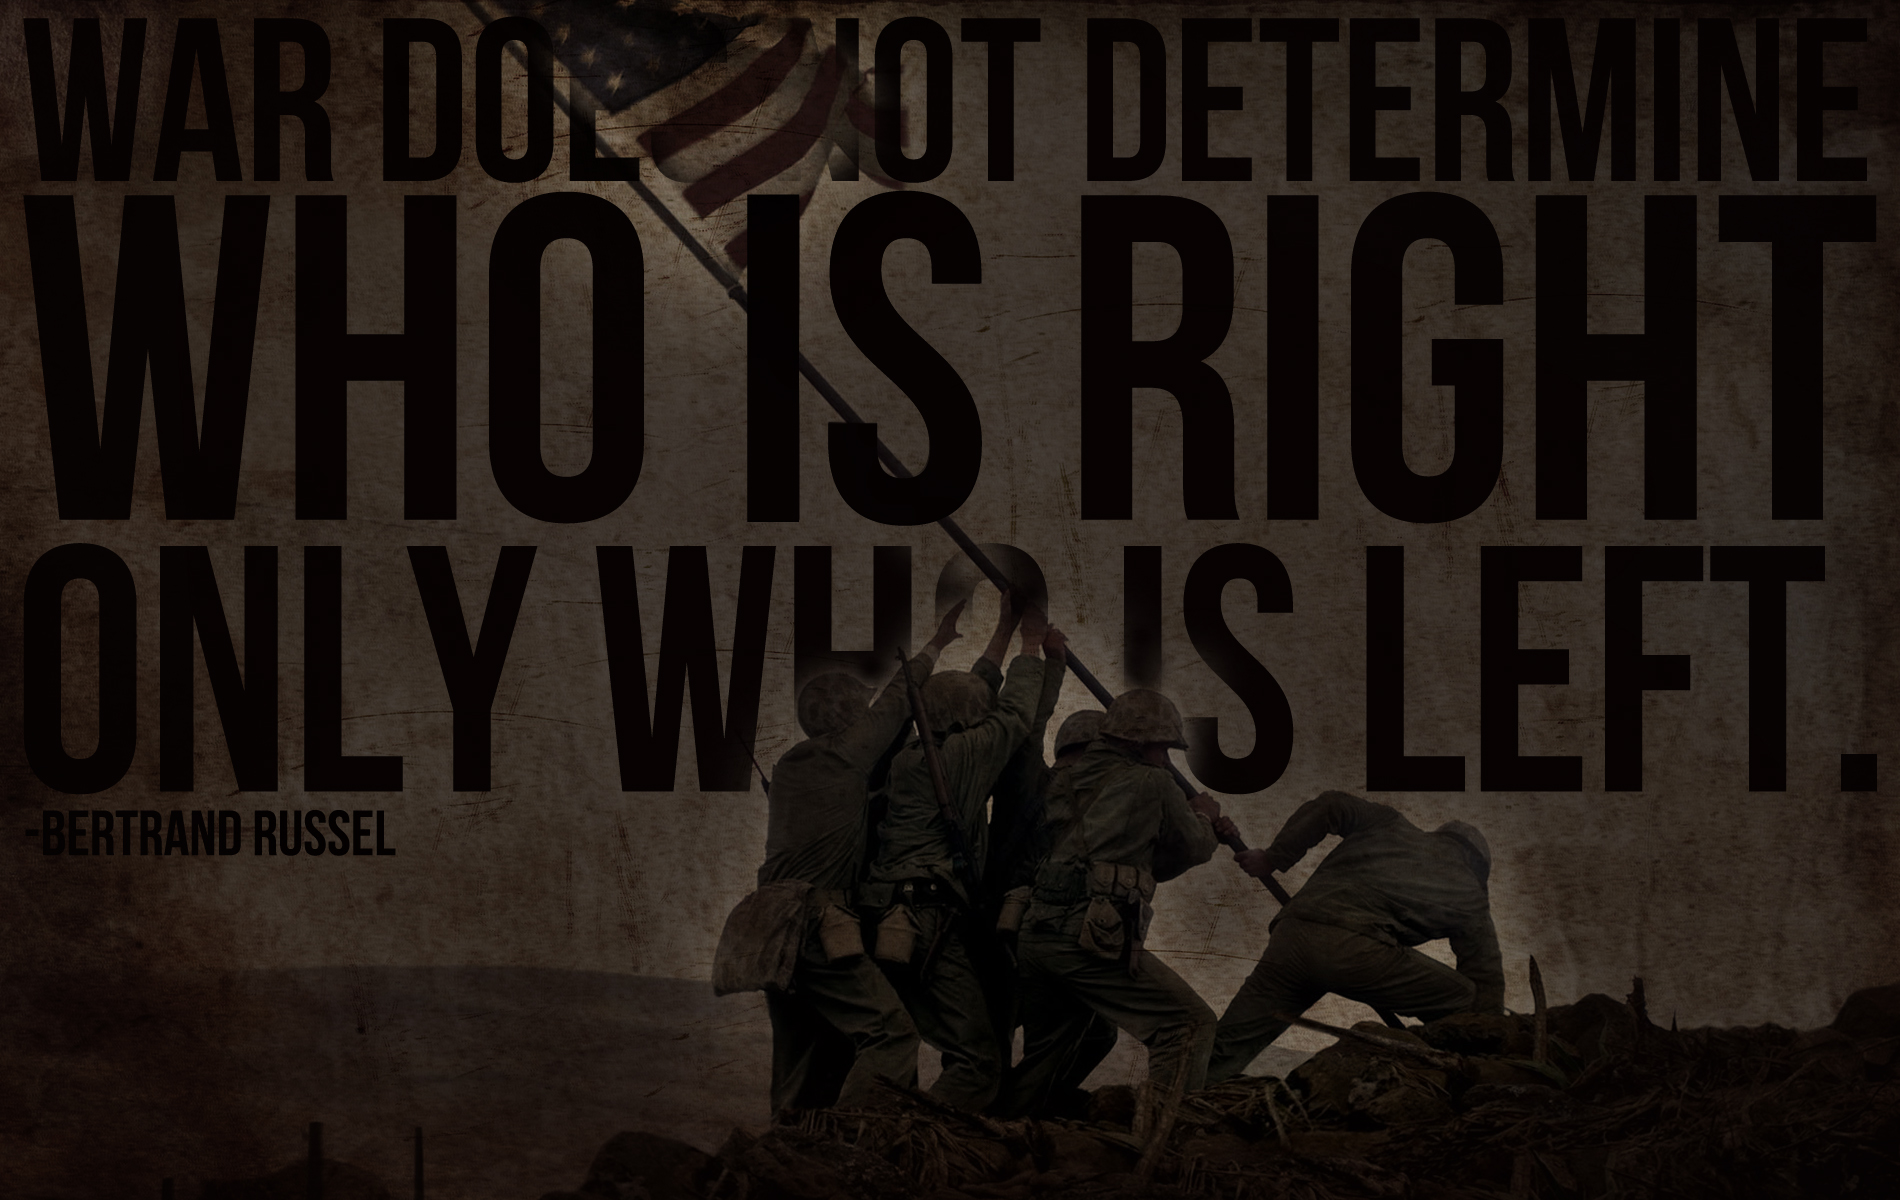 download soldiers quotes wallpaper - photo #9